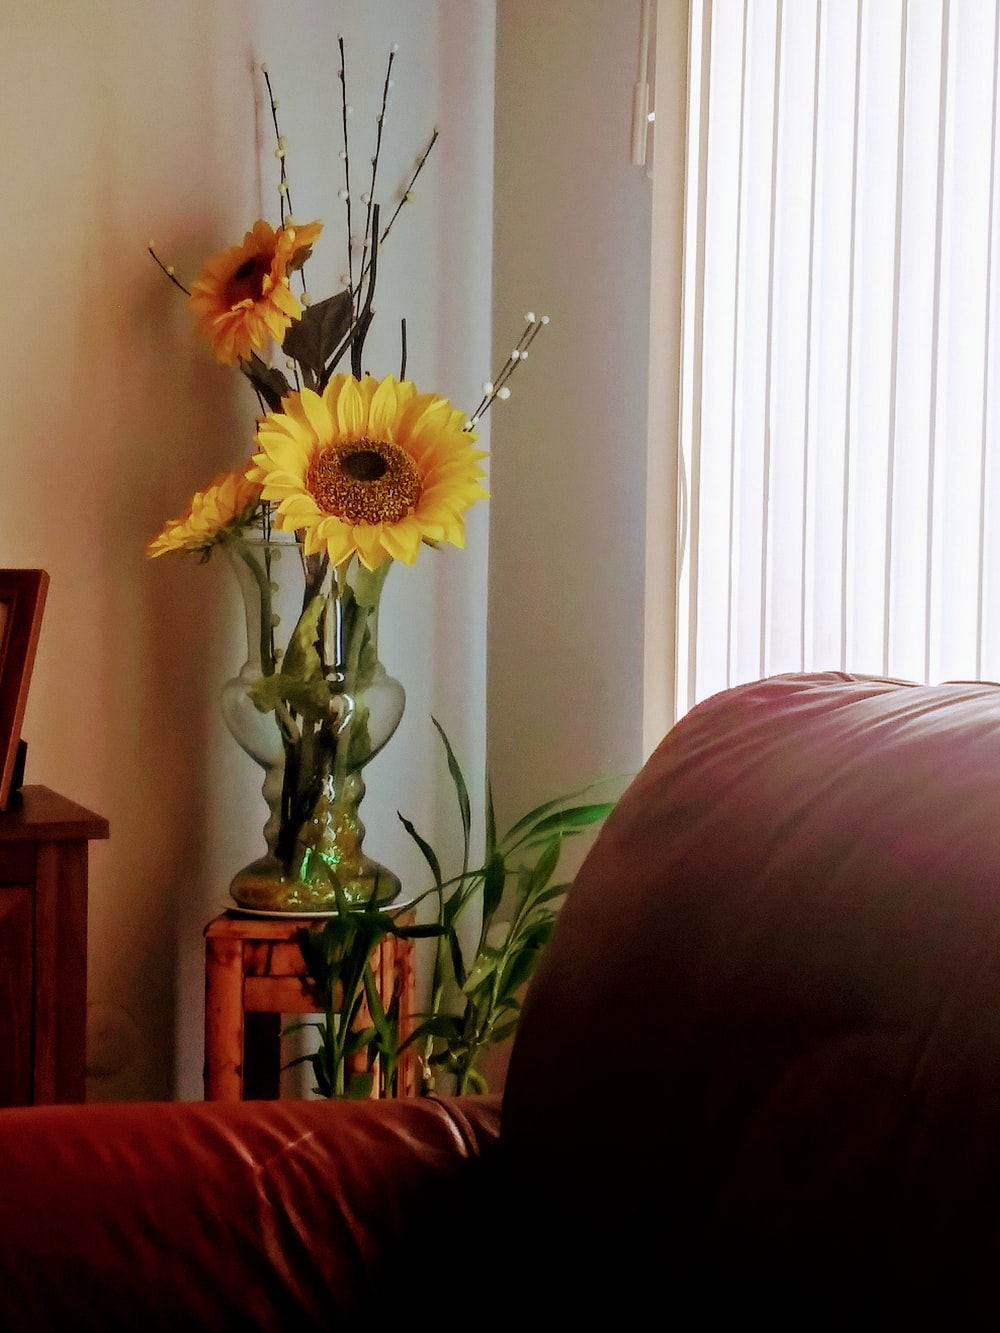 yellow flower in clear glass vase